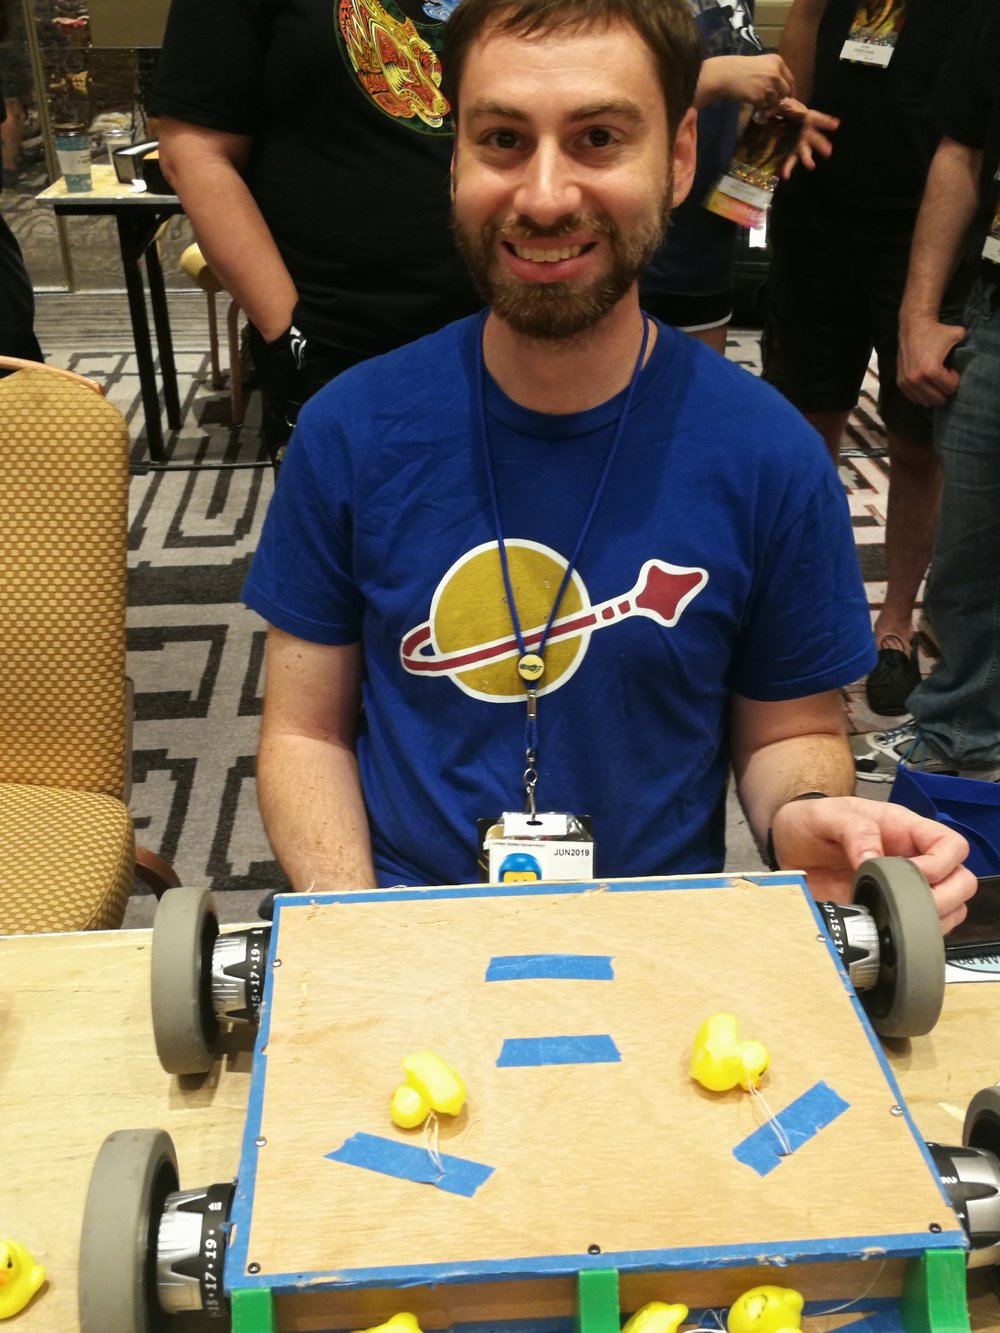 Eric of Team Space Force with their bot Even More Squeaky Ducks